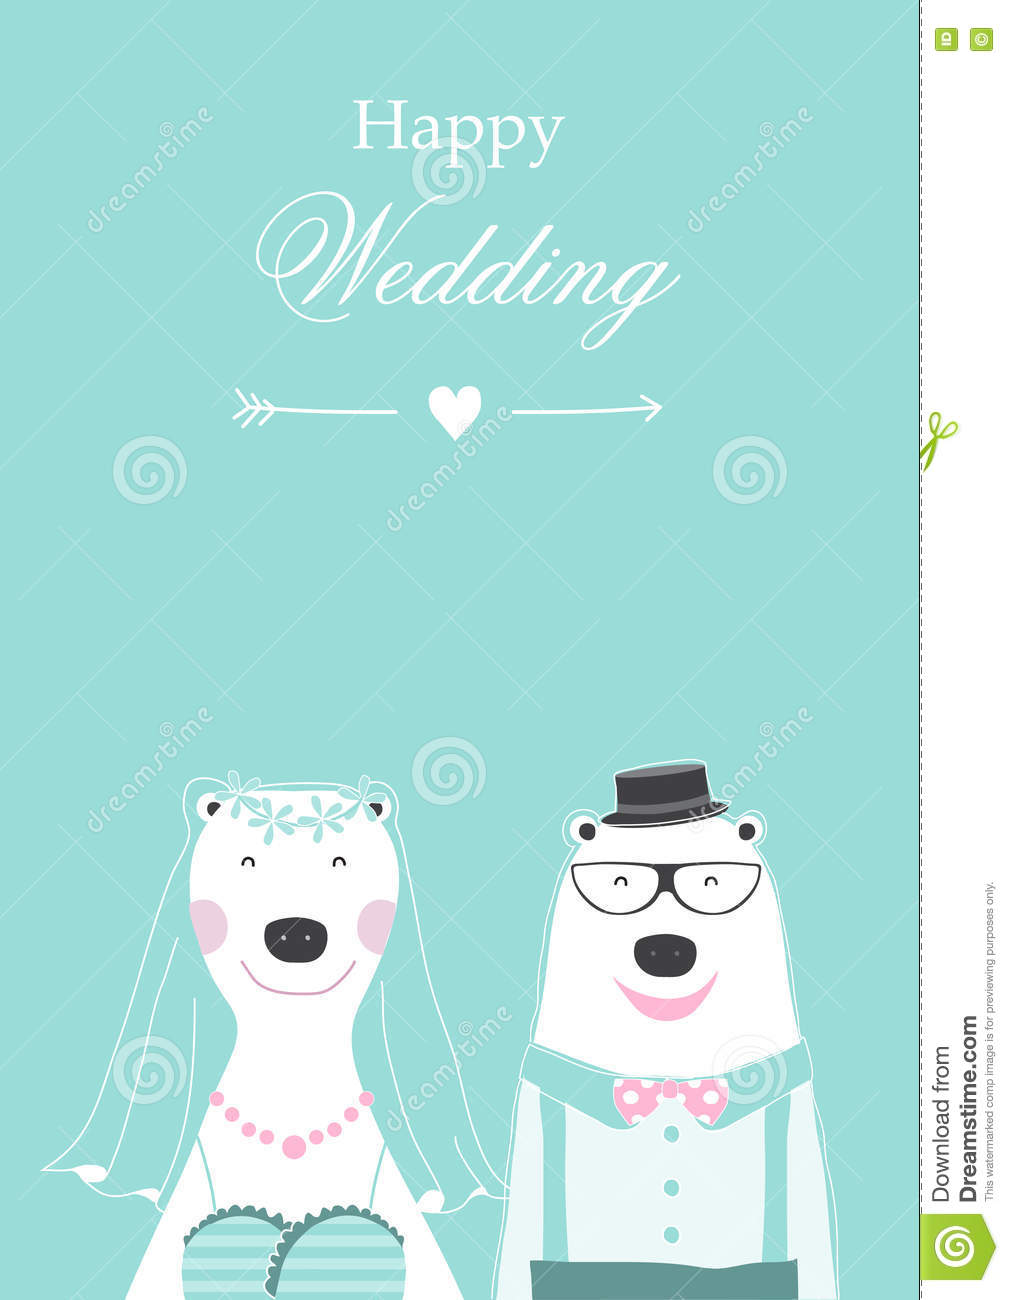 Wedding invitation with cute bears cardspostertemplategreeting wedding invitation with cute bears cardspostertemplategreeting cards animals m4hsunfo